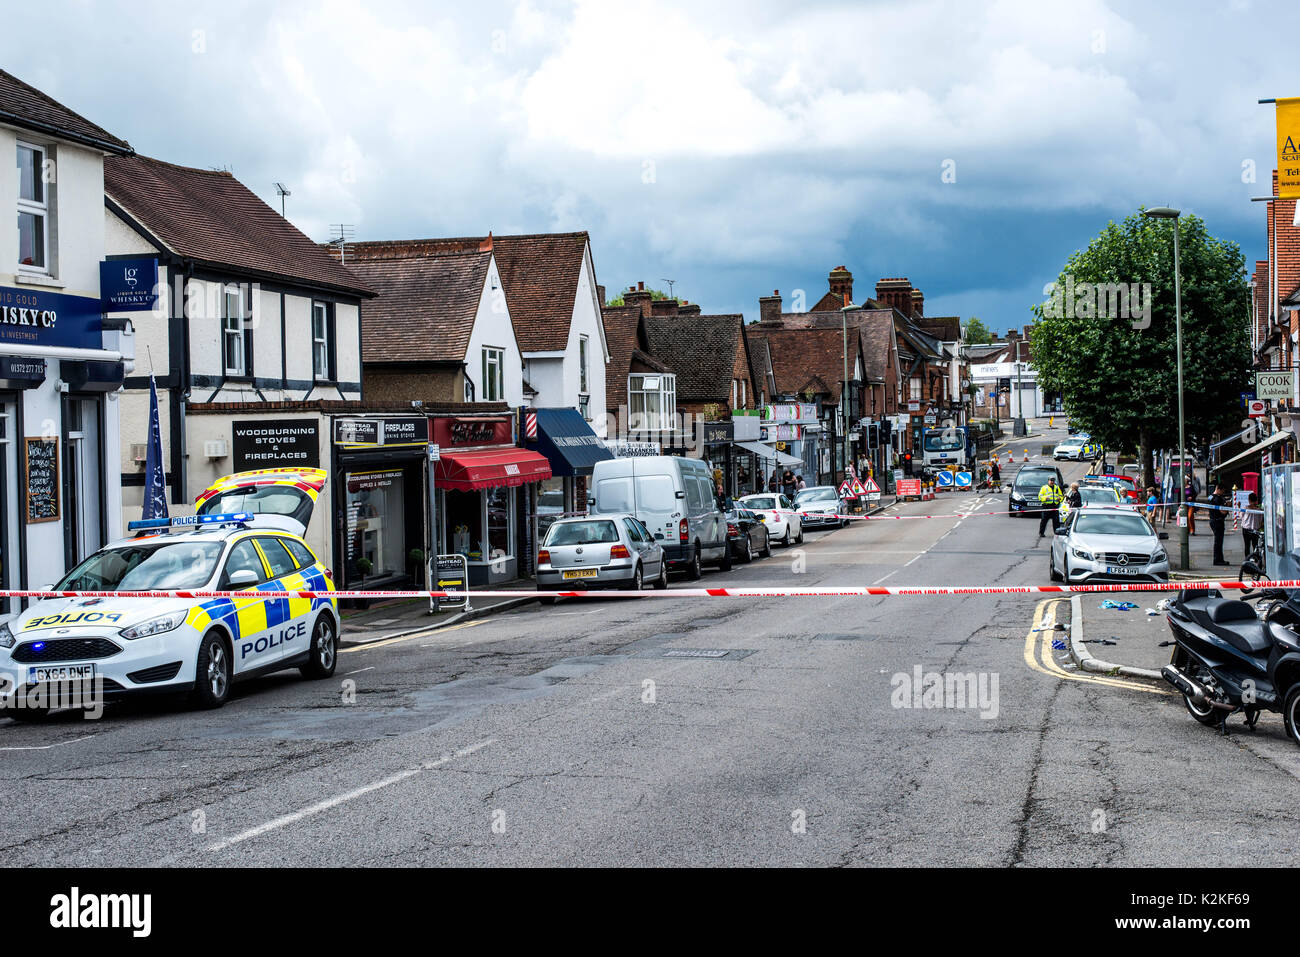 The Street, Ashtead, Surrey, United Kingdom, 31st August 2017. Emergency Serives Attend the scene of a serious Road Traffic Accident, Including a HEMS Air Ambulance. A woman in her 70s' sustained serious and life threatening head injuries after being hit by a motorbike and was transferred, by road, to St.Georges Hospital in Tooting, South London. - Stock Image